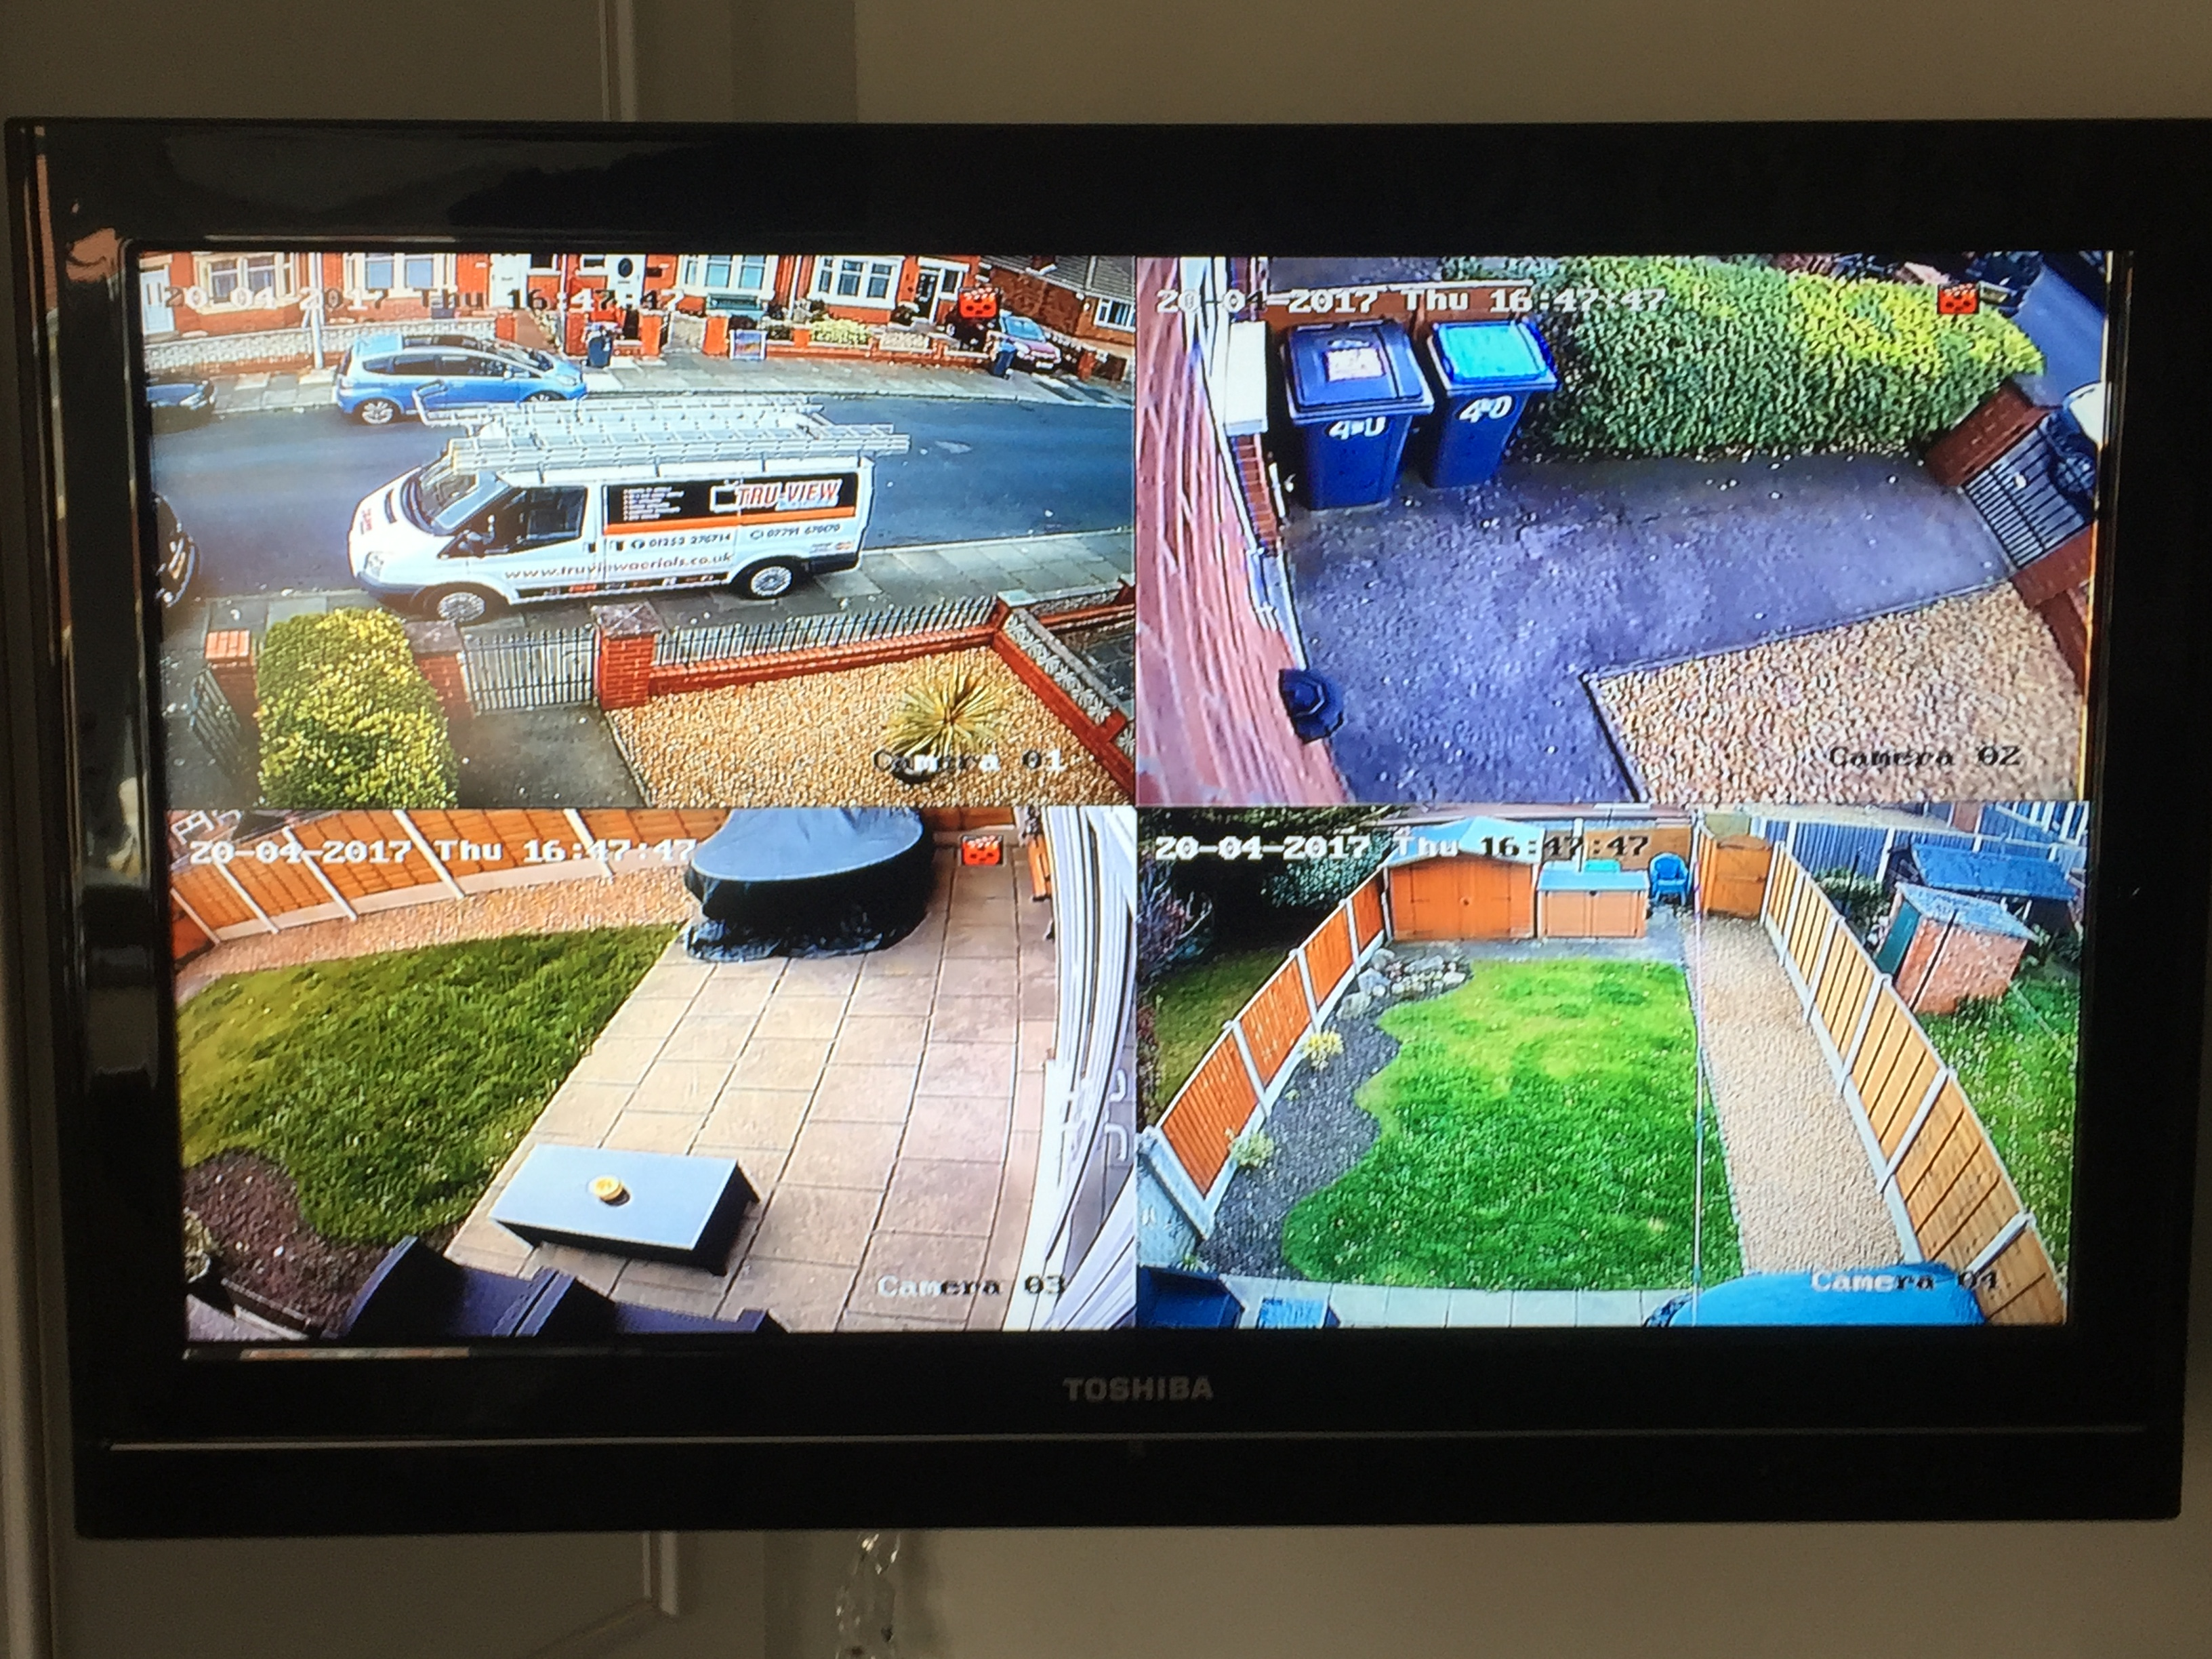 cctv systems Blackpool